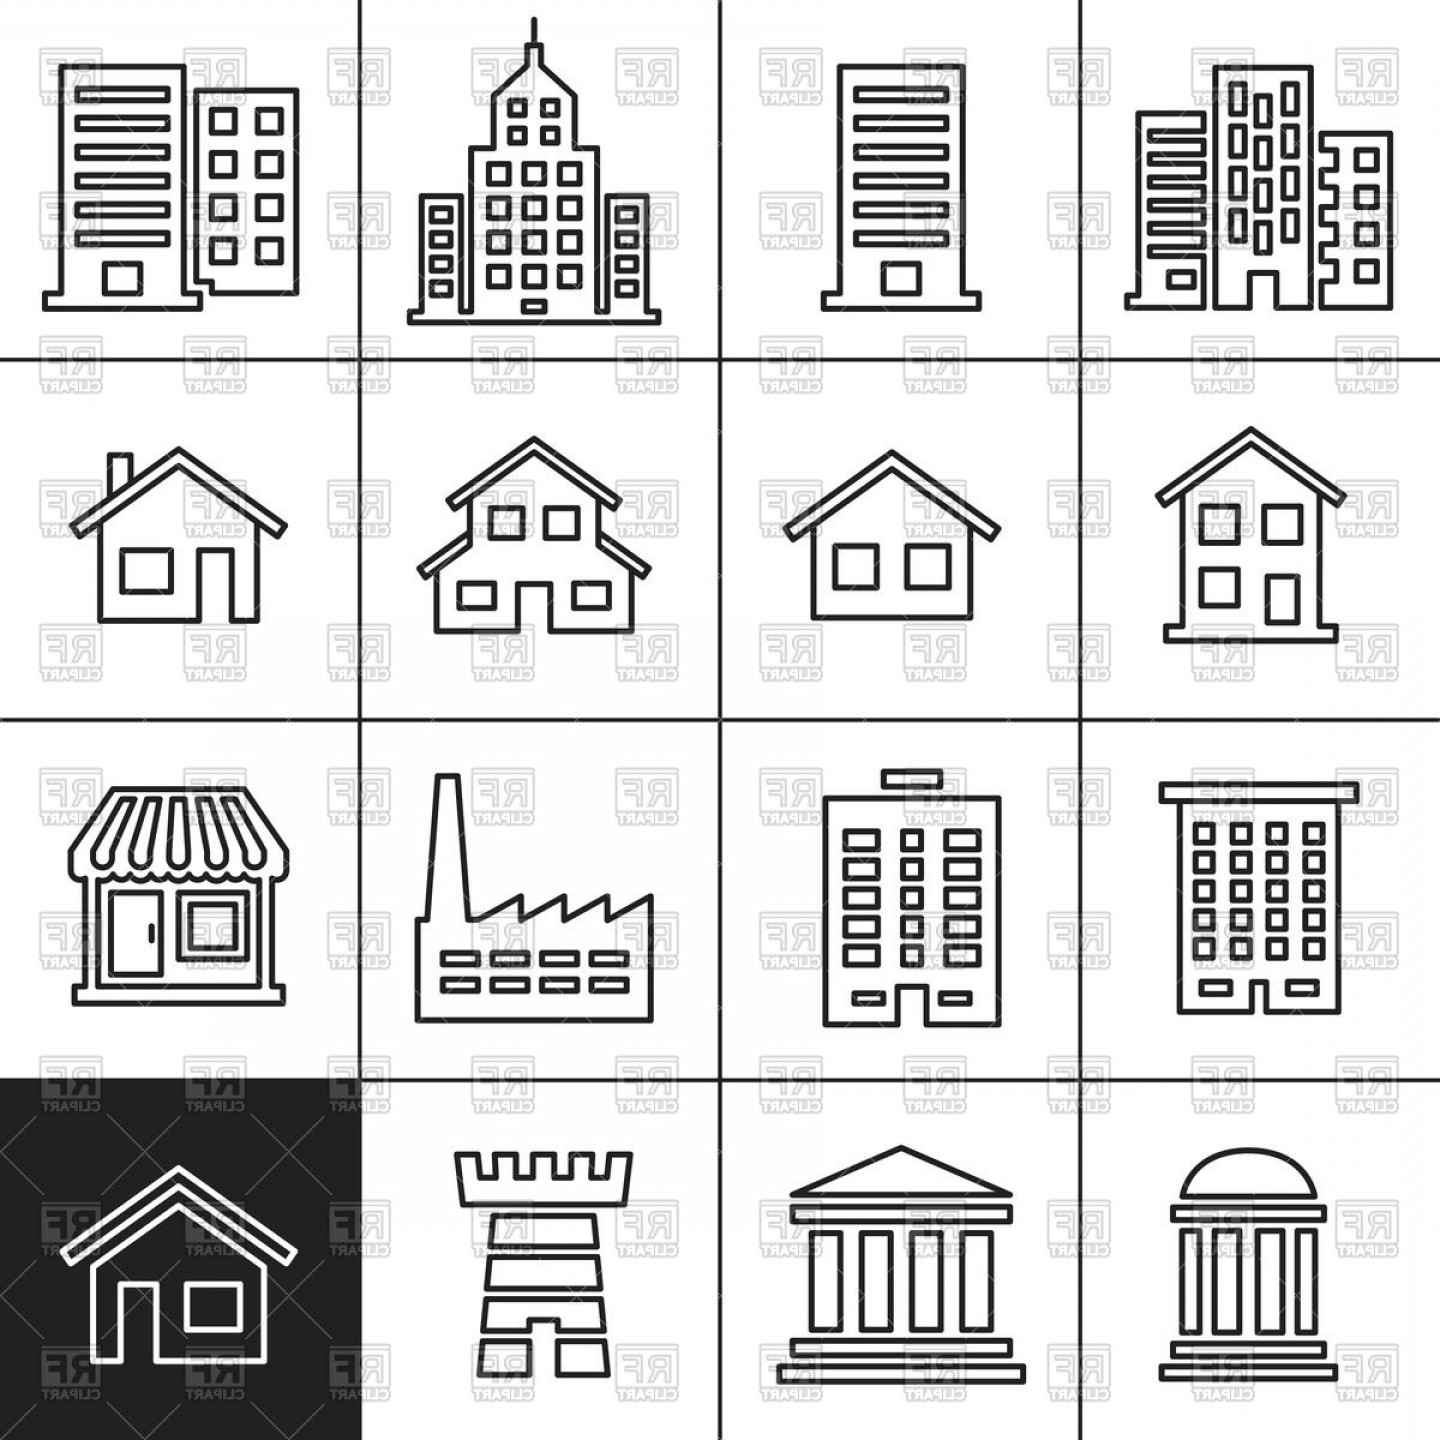 Architecture Vector: Icons Of Buildings Of Different Architecture Types Vector Clipart